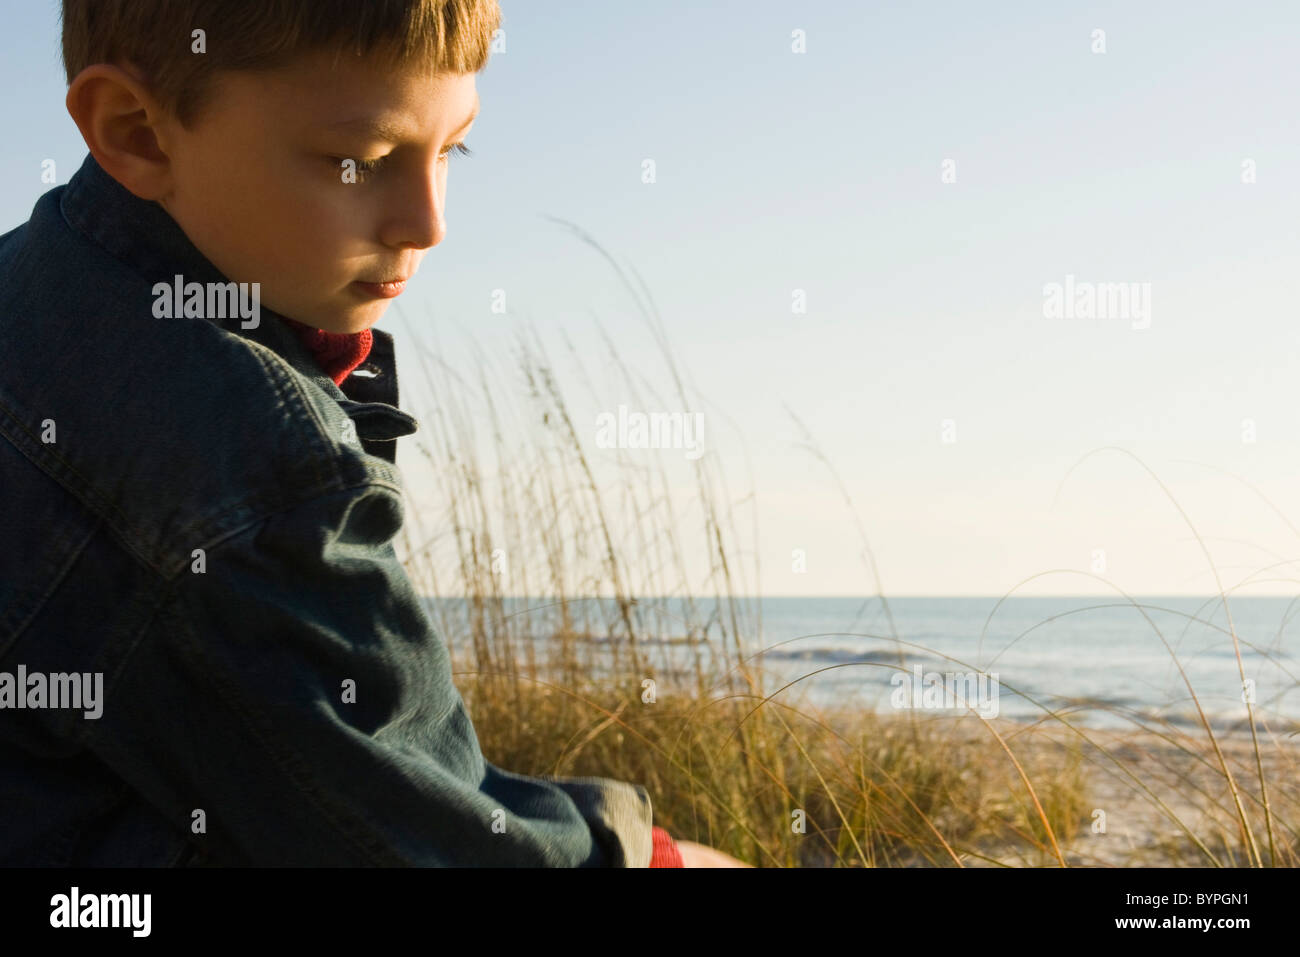 Young boy outdoors contemplatively looking away - Stock Image